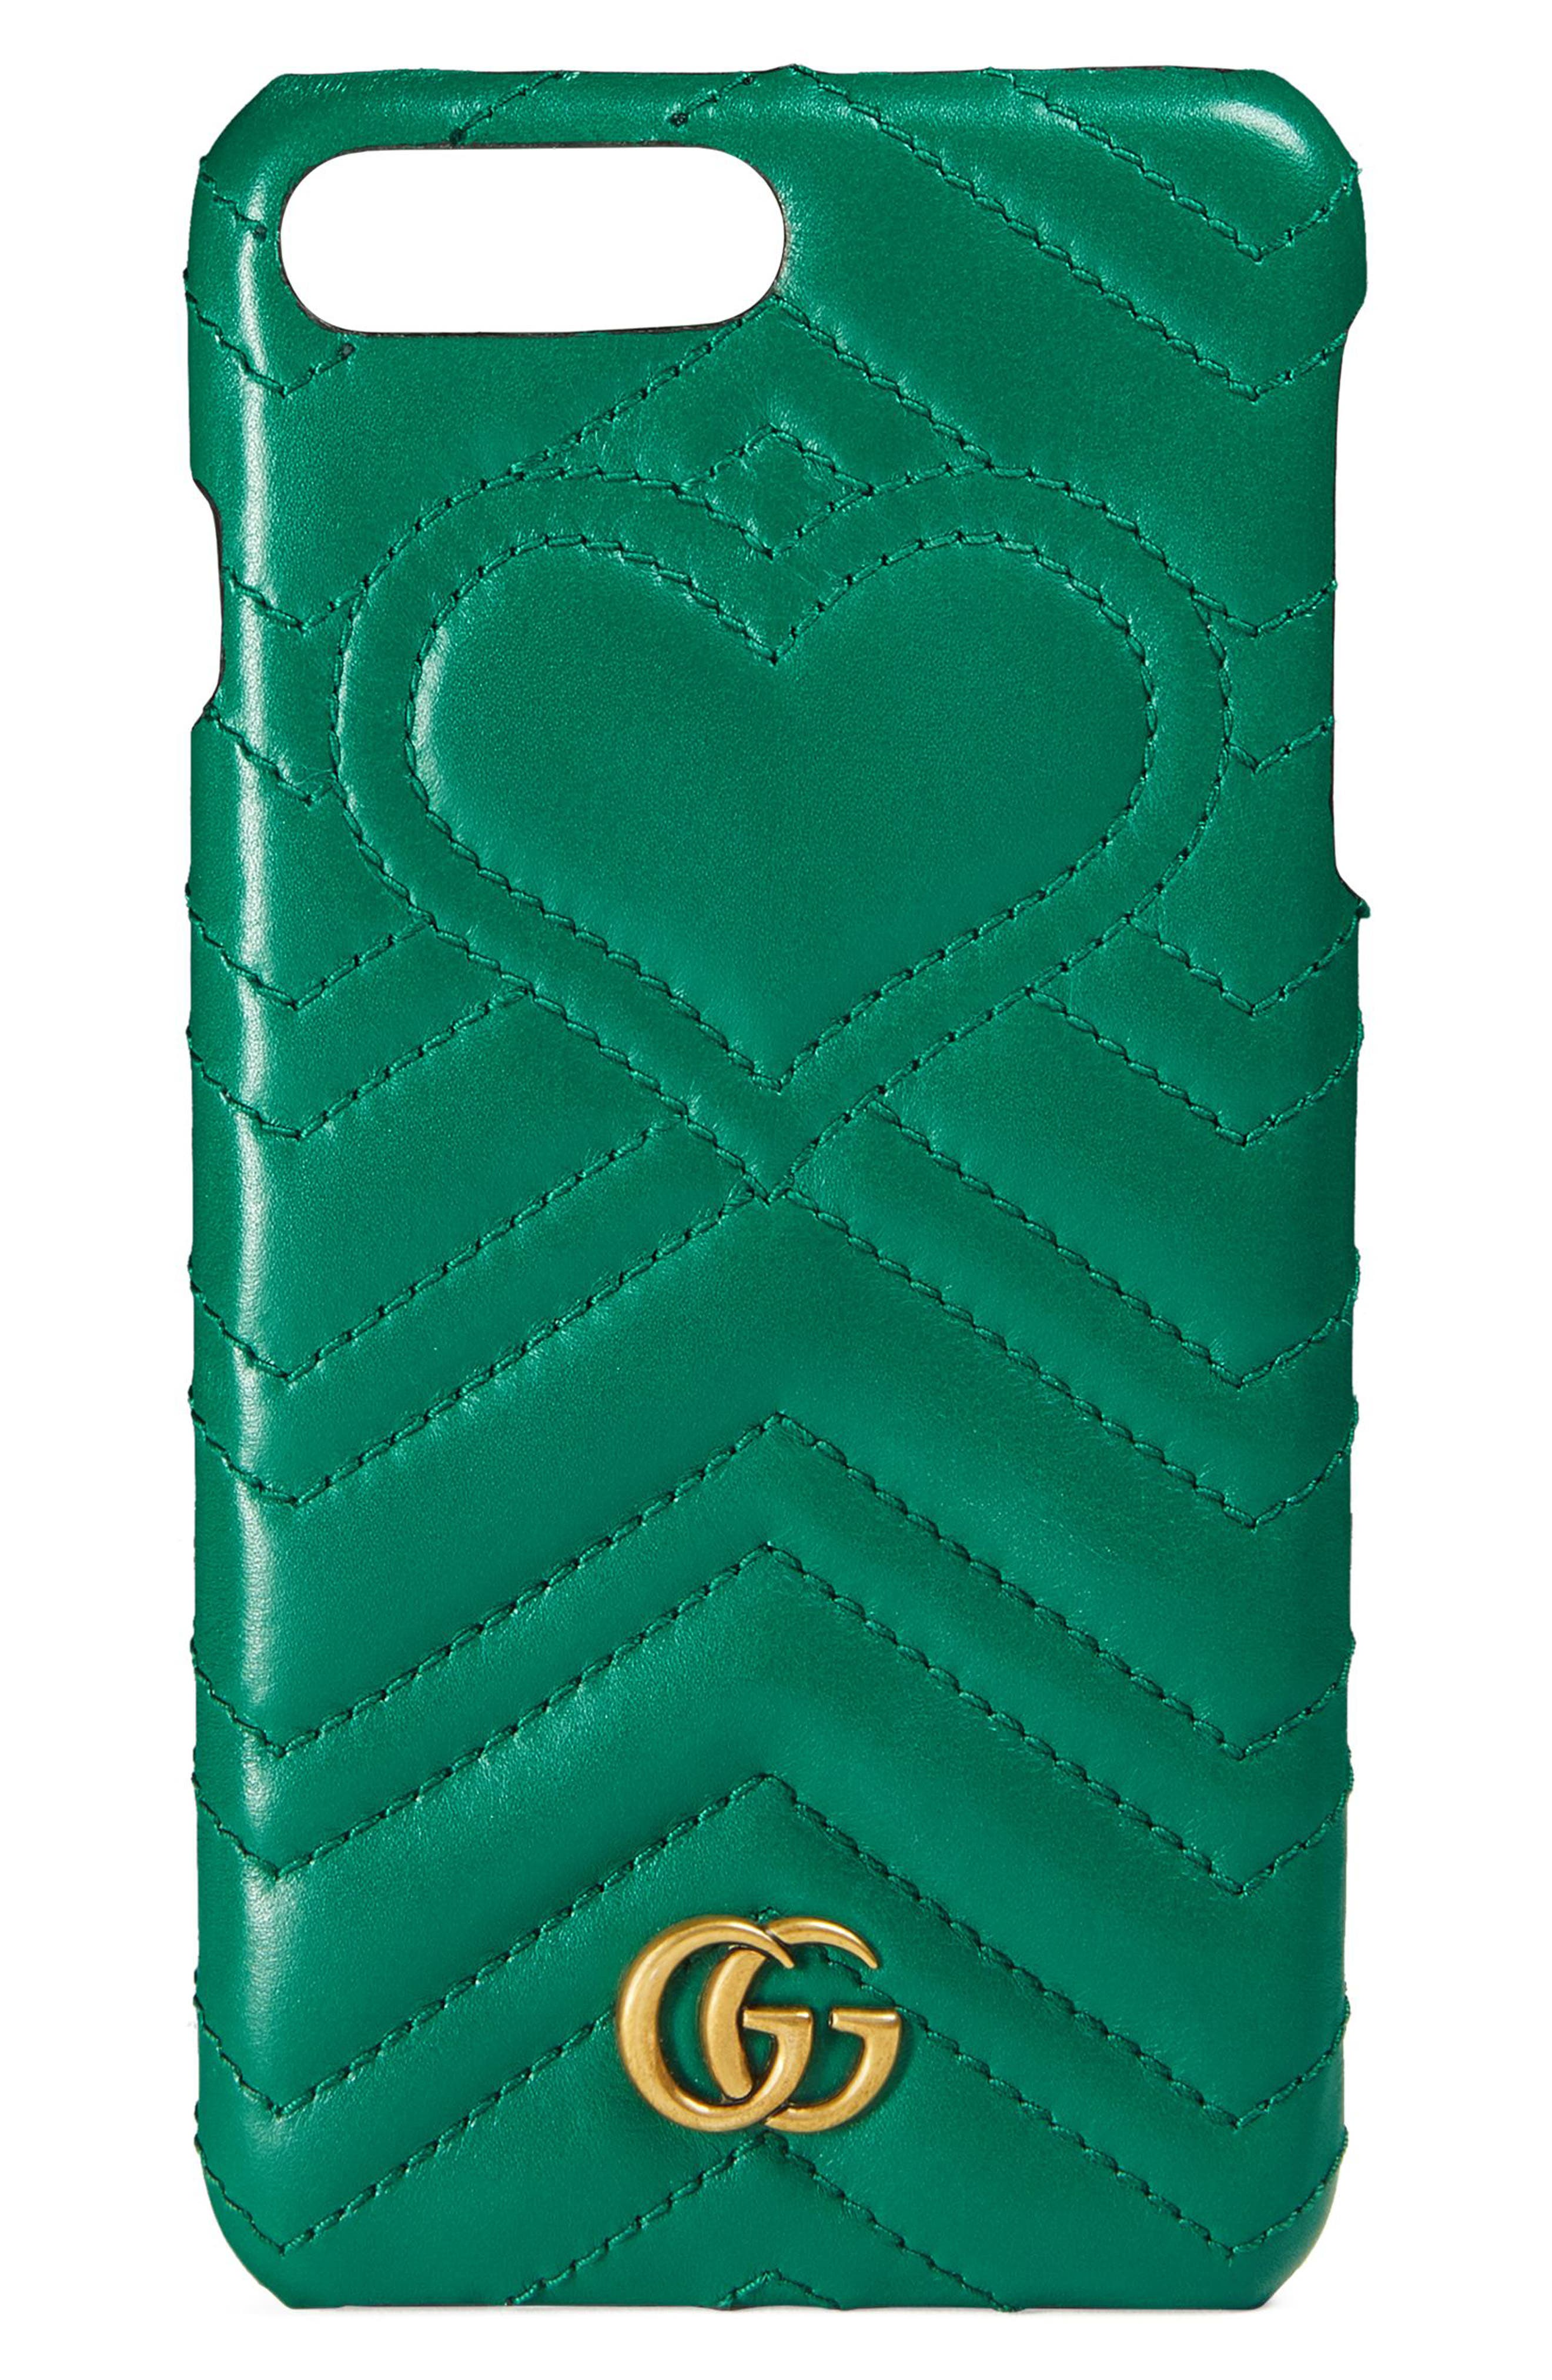 Gucci GG Marmont 2.0 iPhone 7+ Case